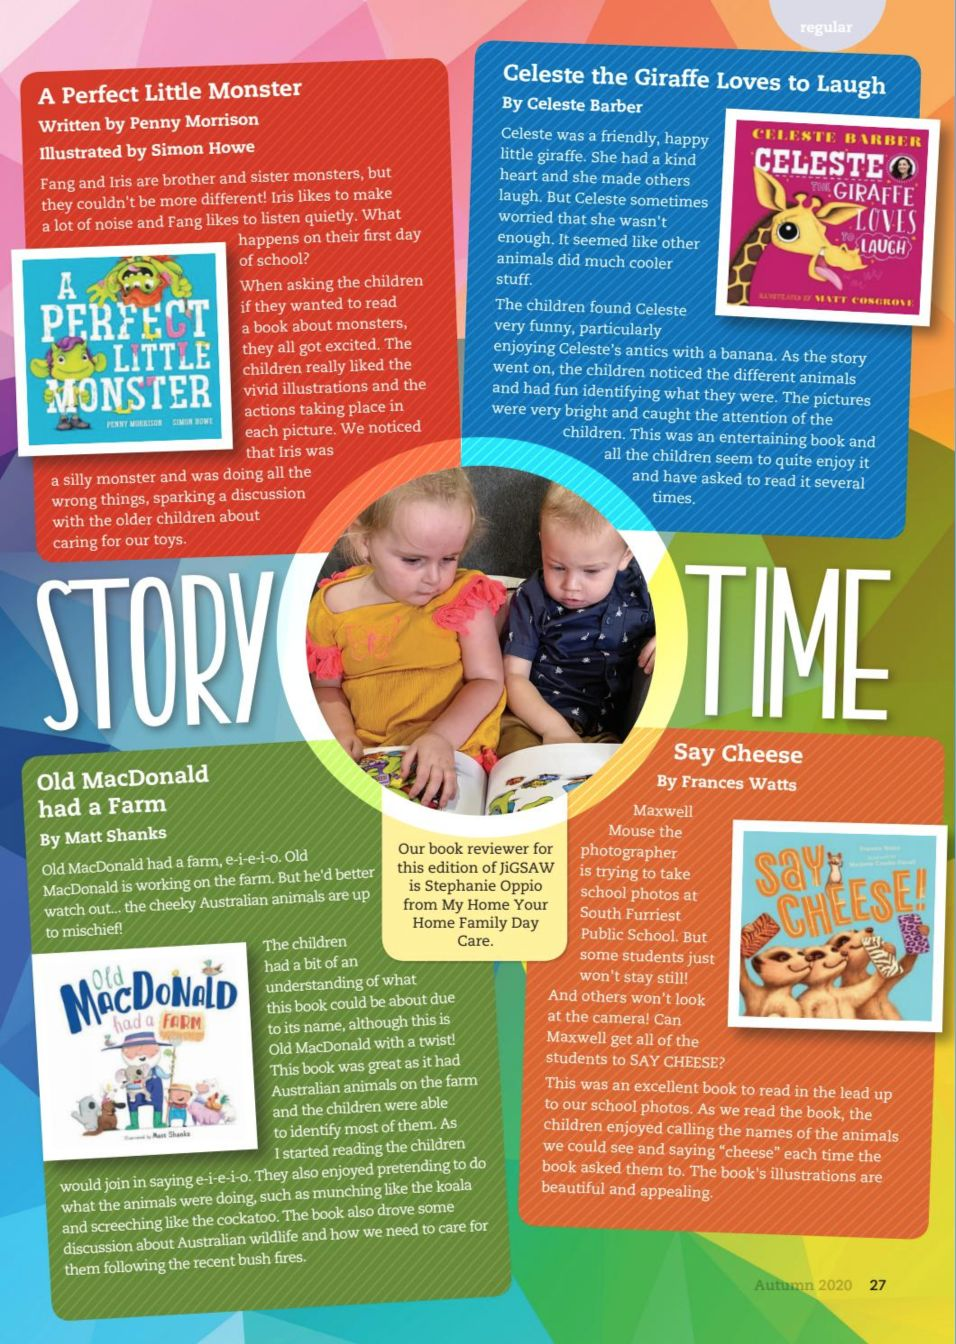 Family Day Care Australia Book Review